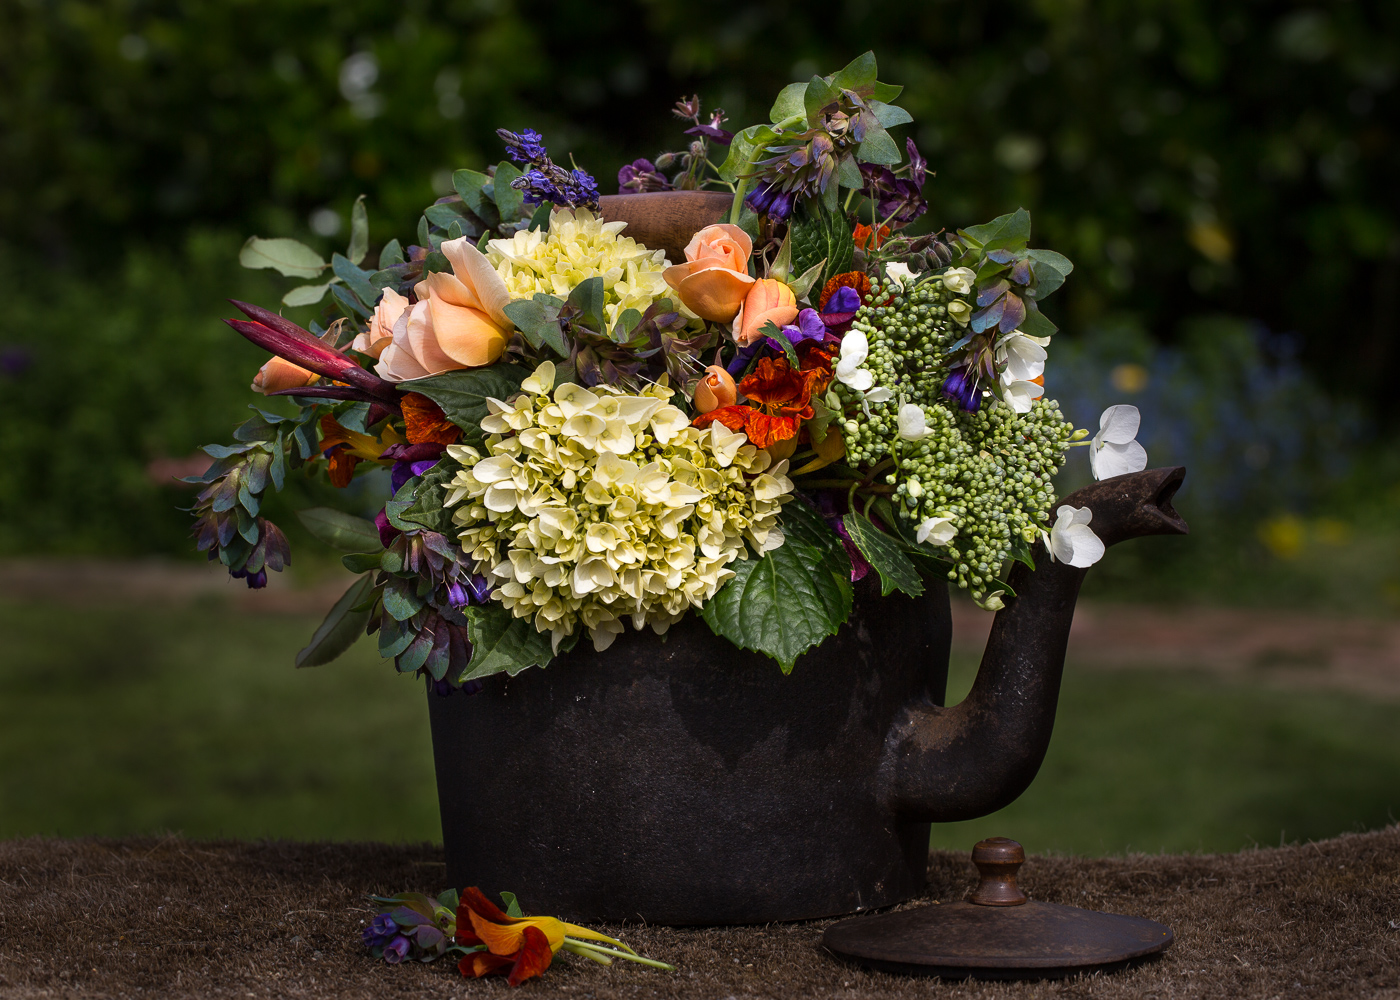 flowers in old cast iron kettle